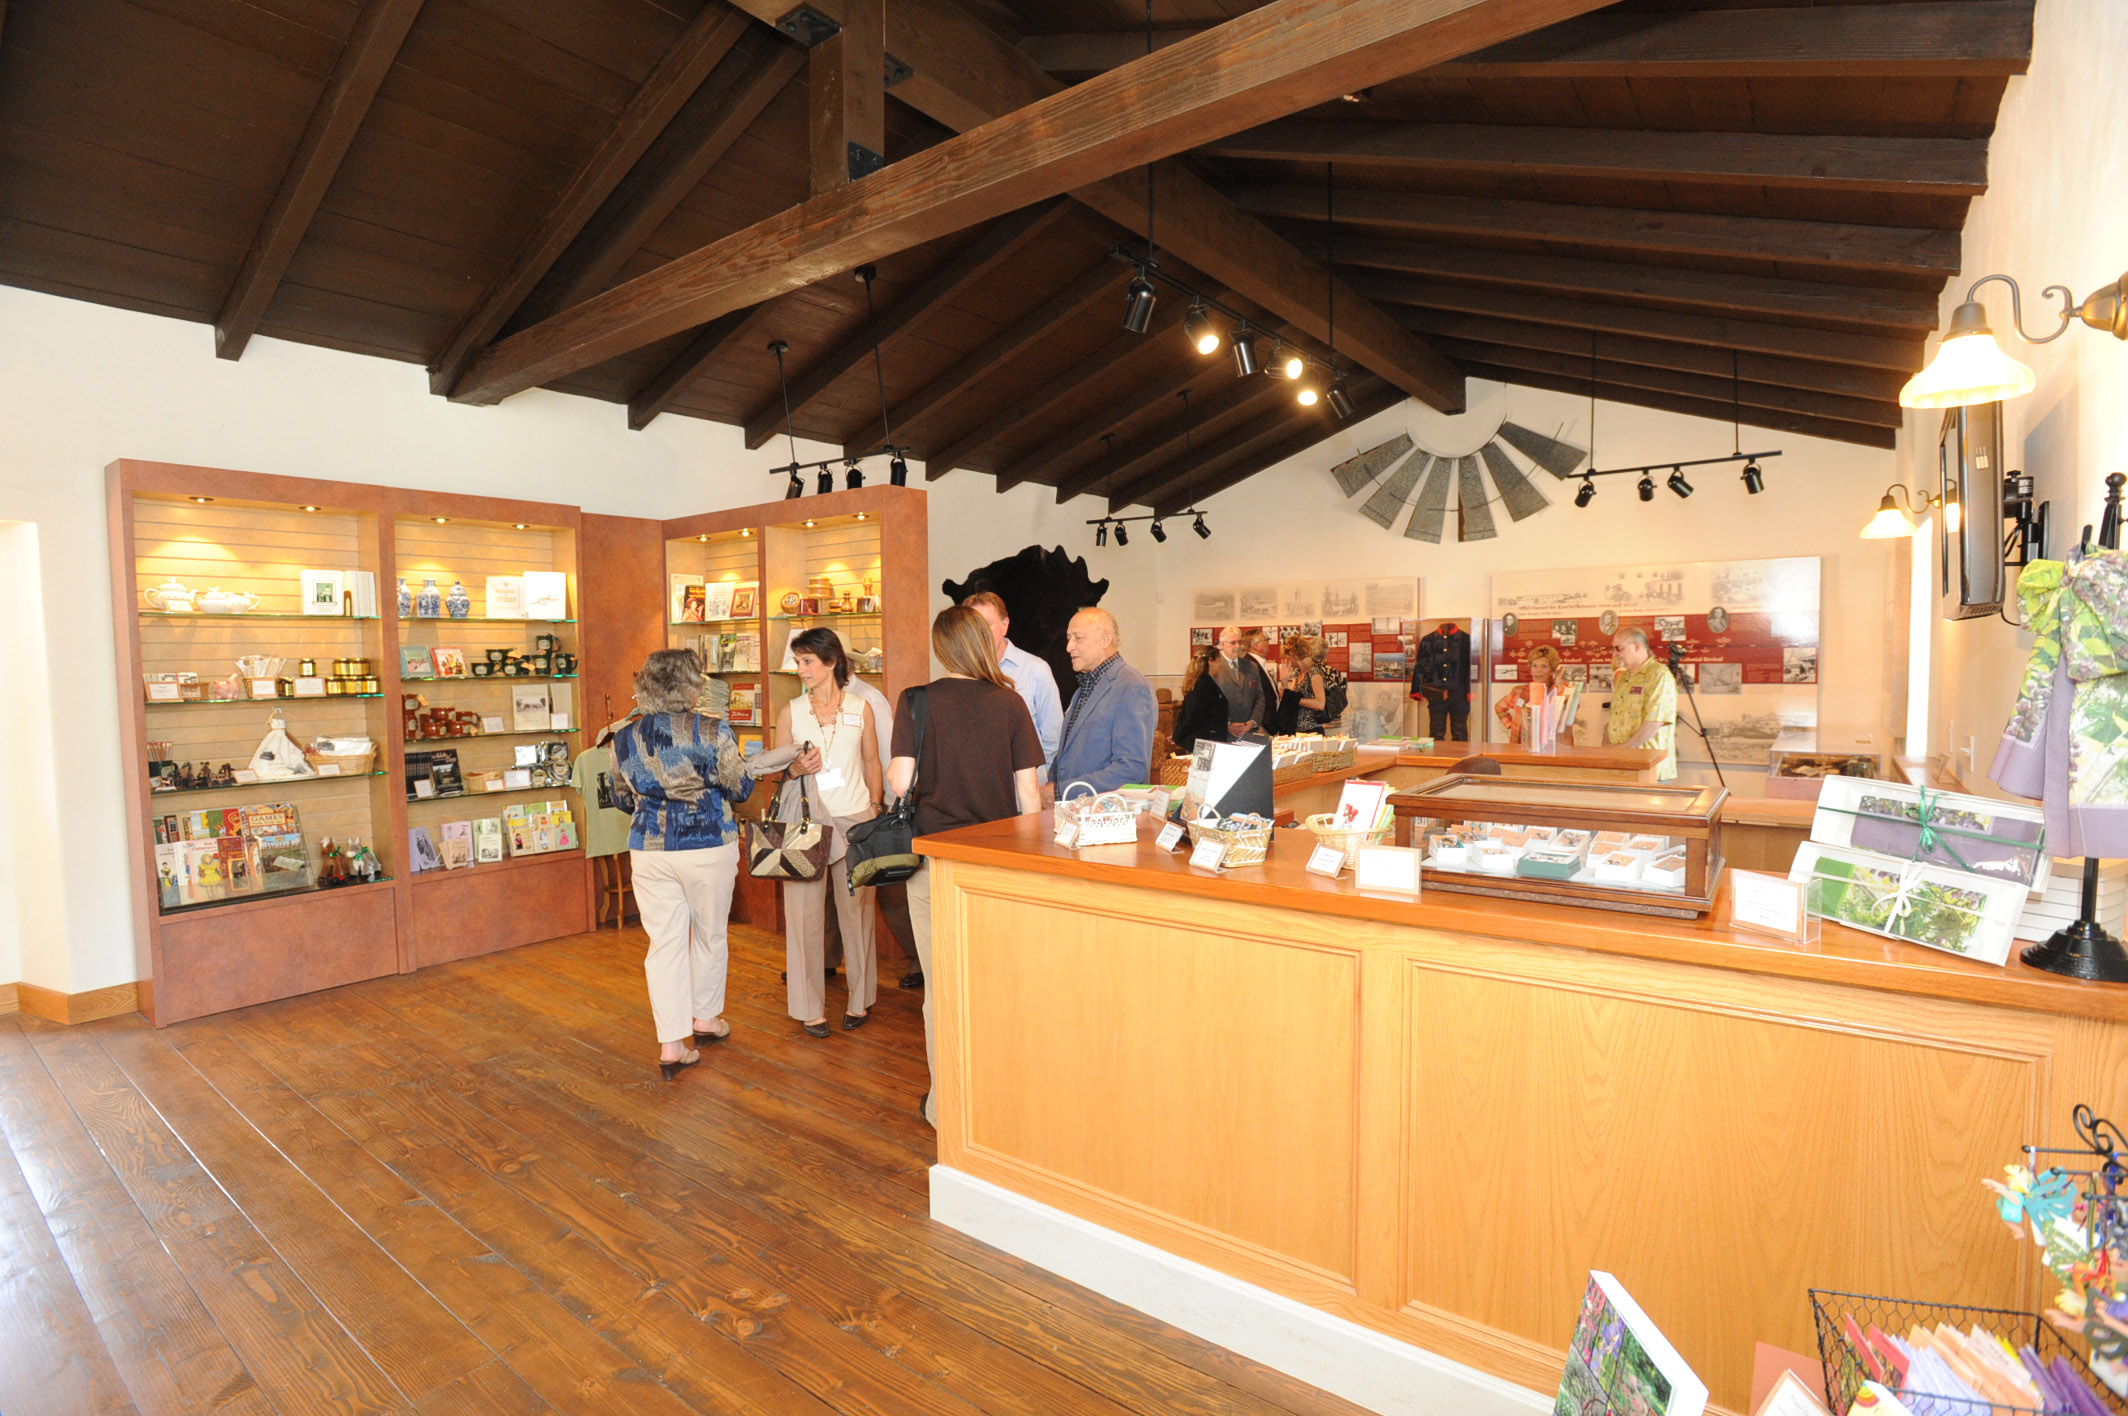 Rancho Los Cerritos Historic Site has guided tours, special events and more.